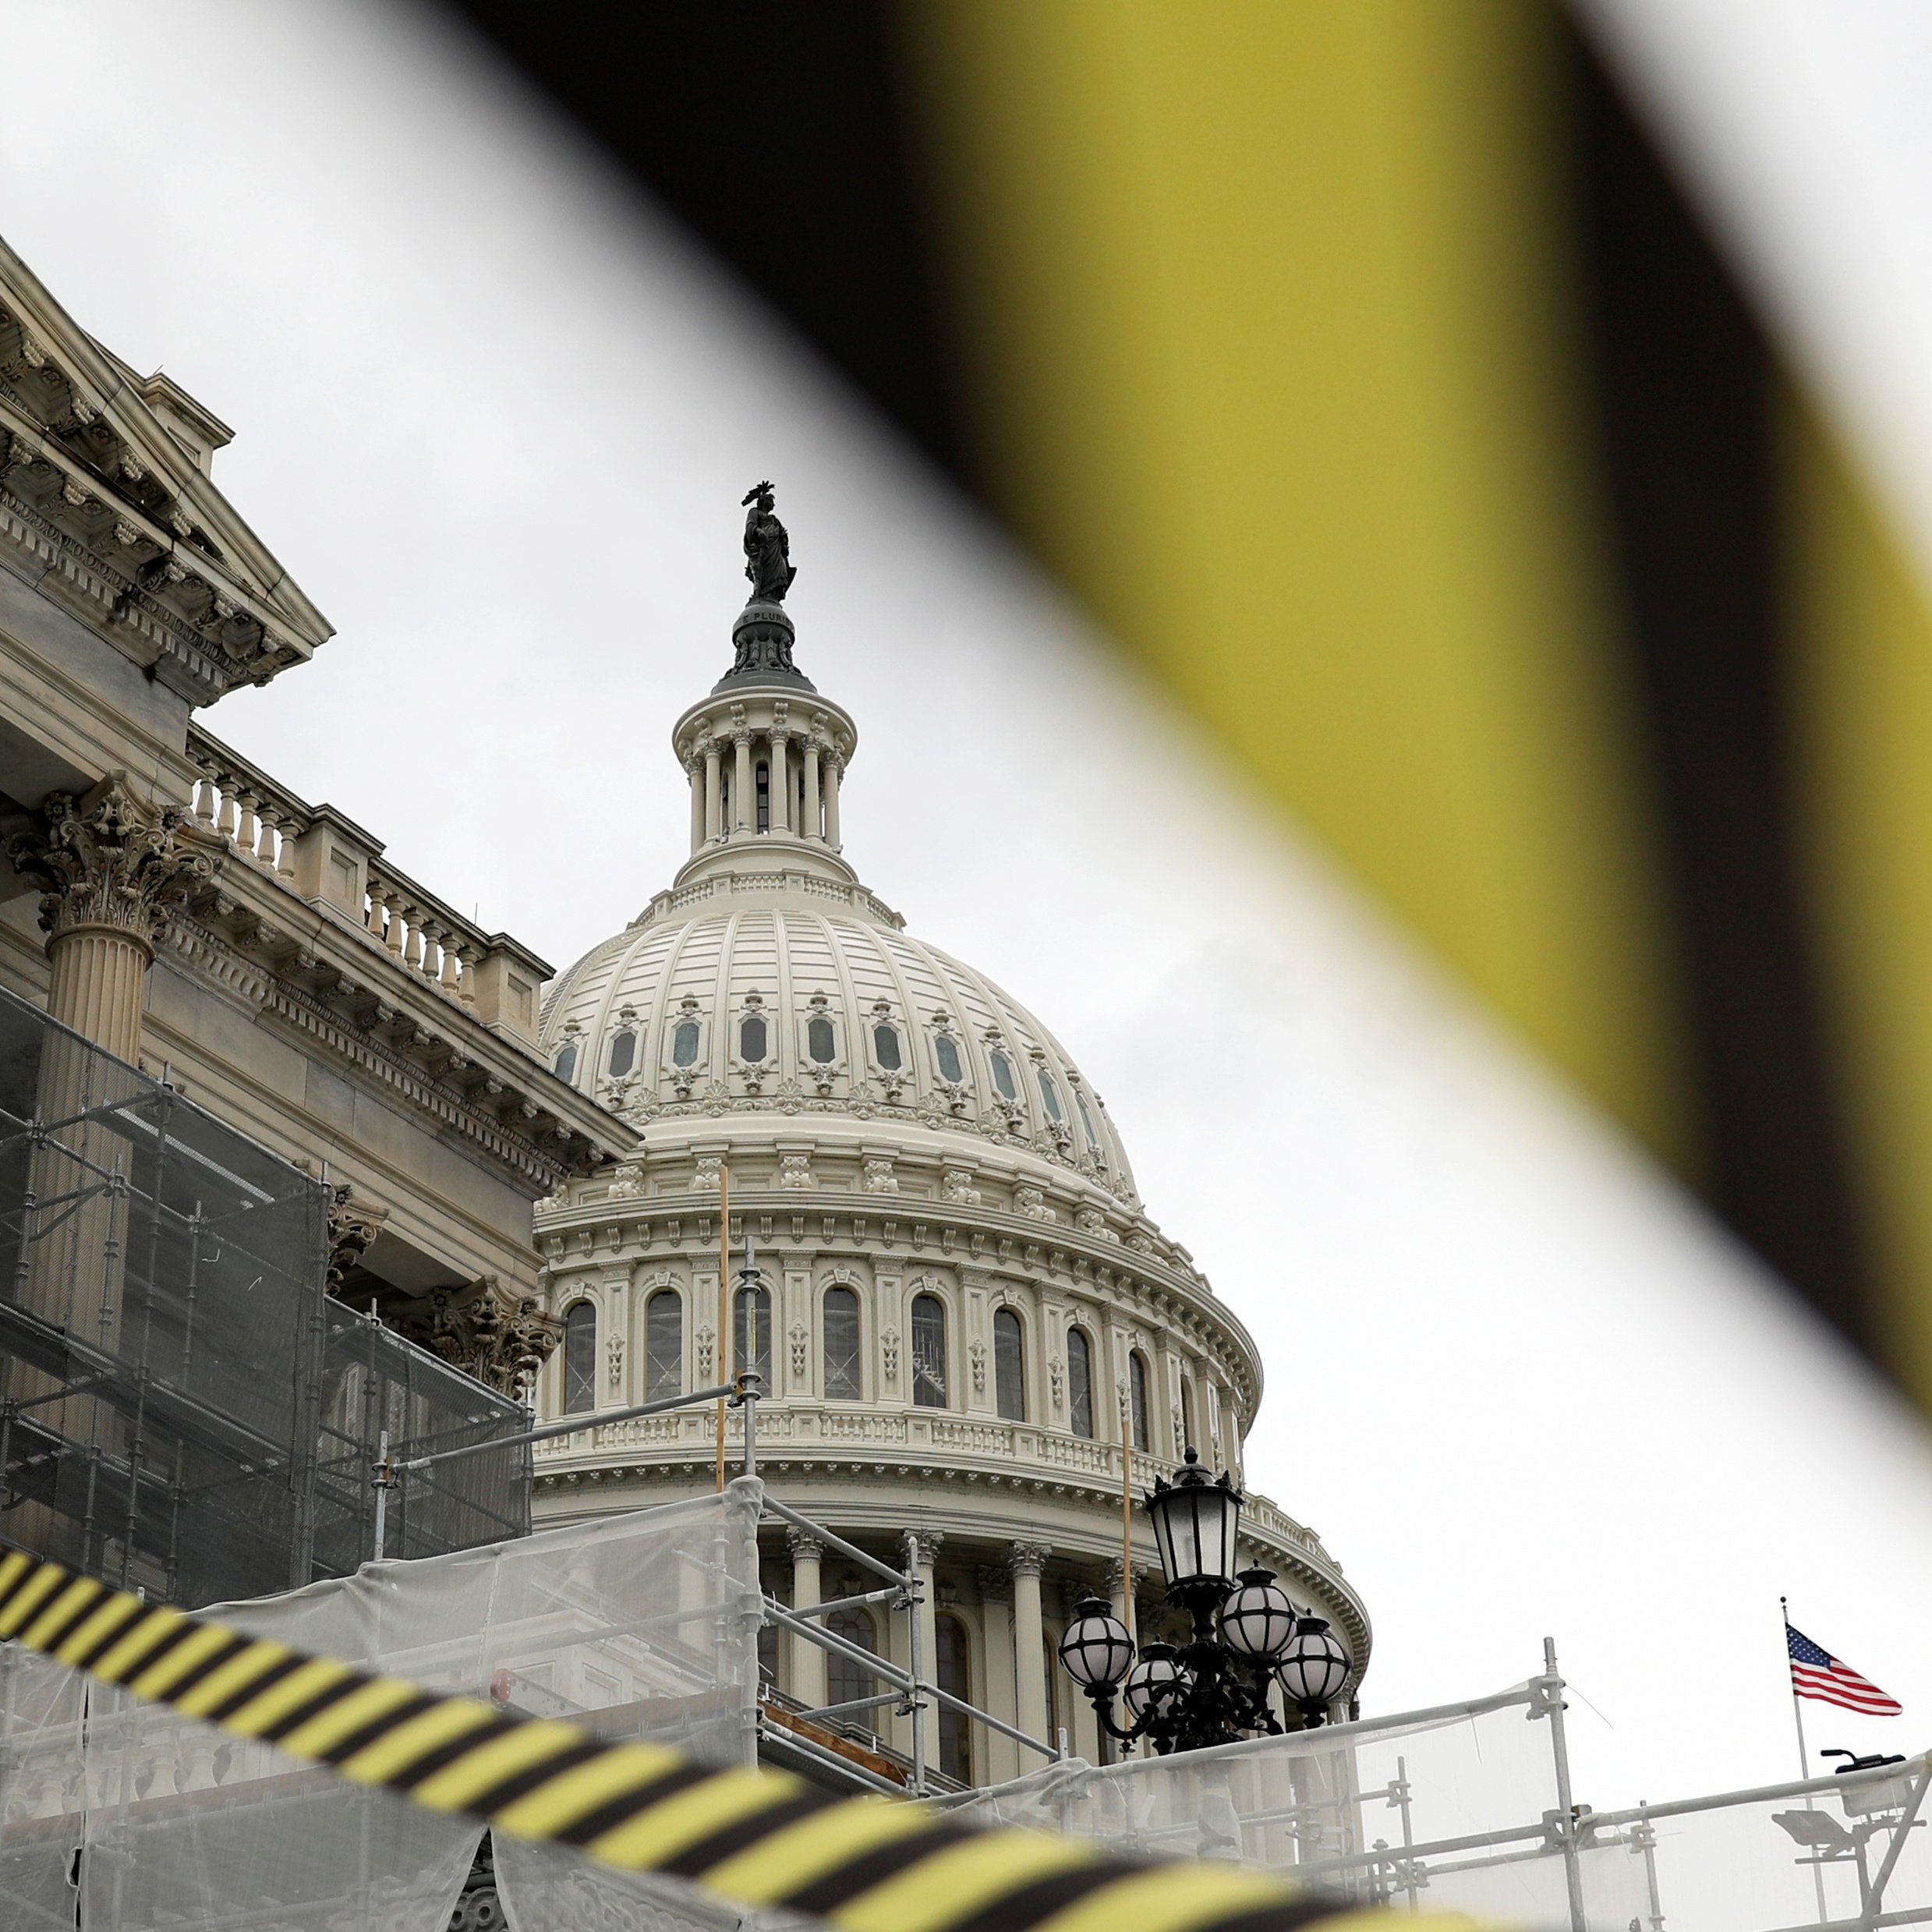 Construction fencing and caution tape surround part of the U.S. Capitol building in Washington, U.S. November 2, 2018. REUTERS/Jonathan Ernst